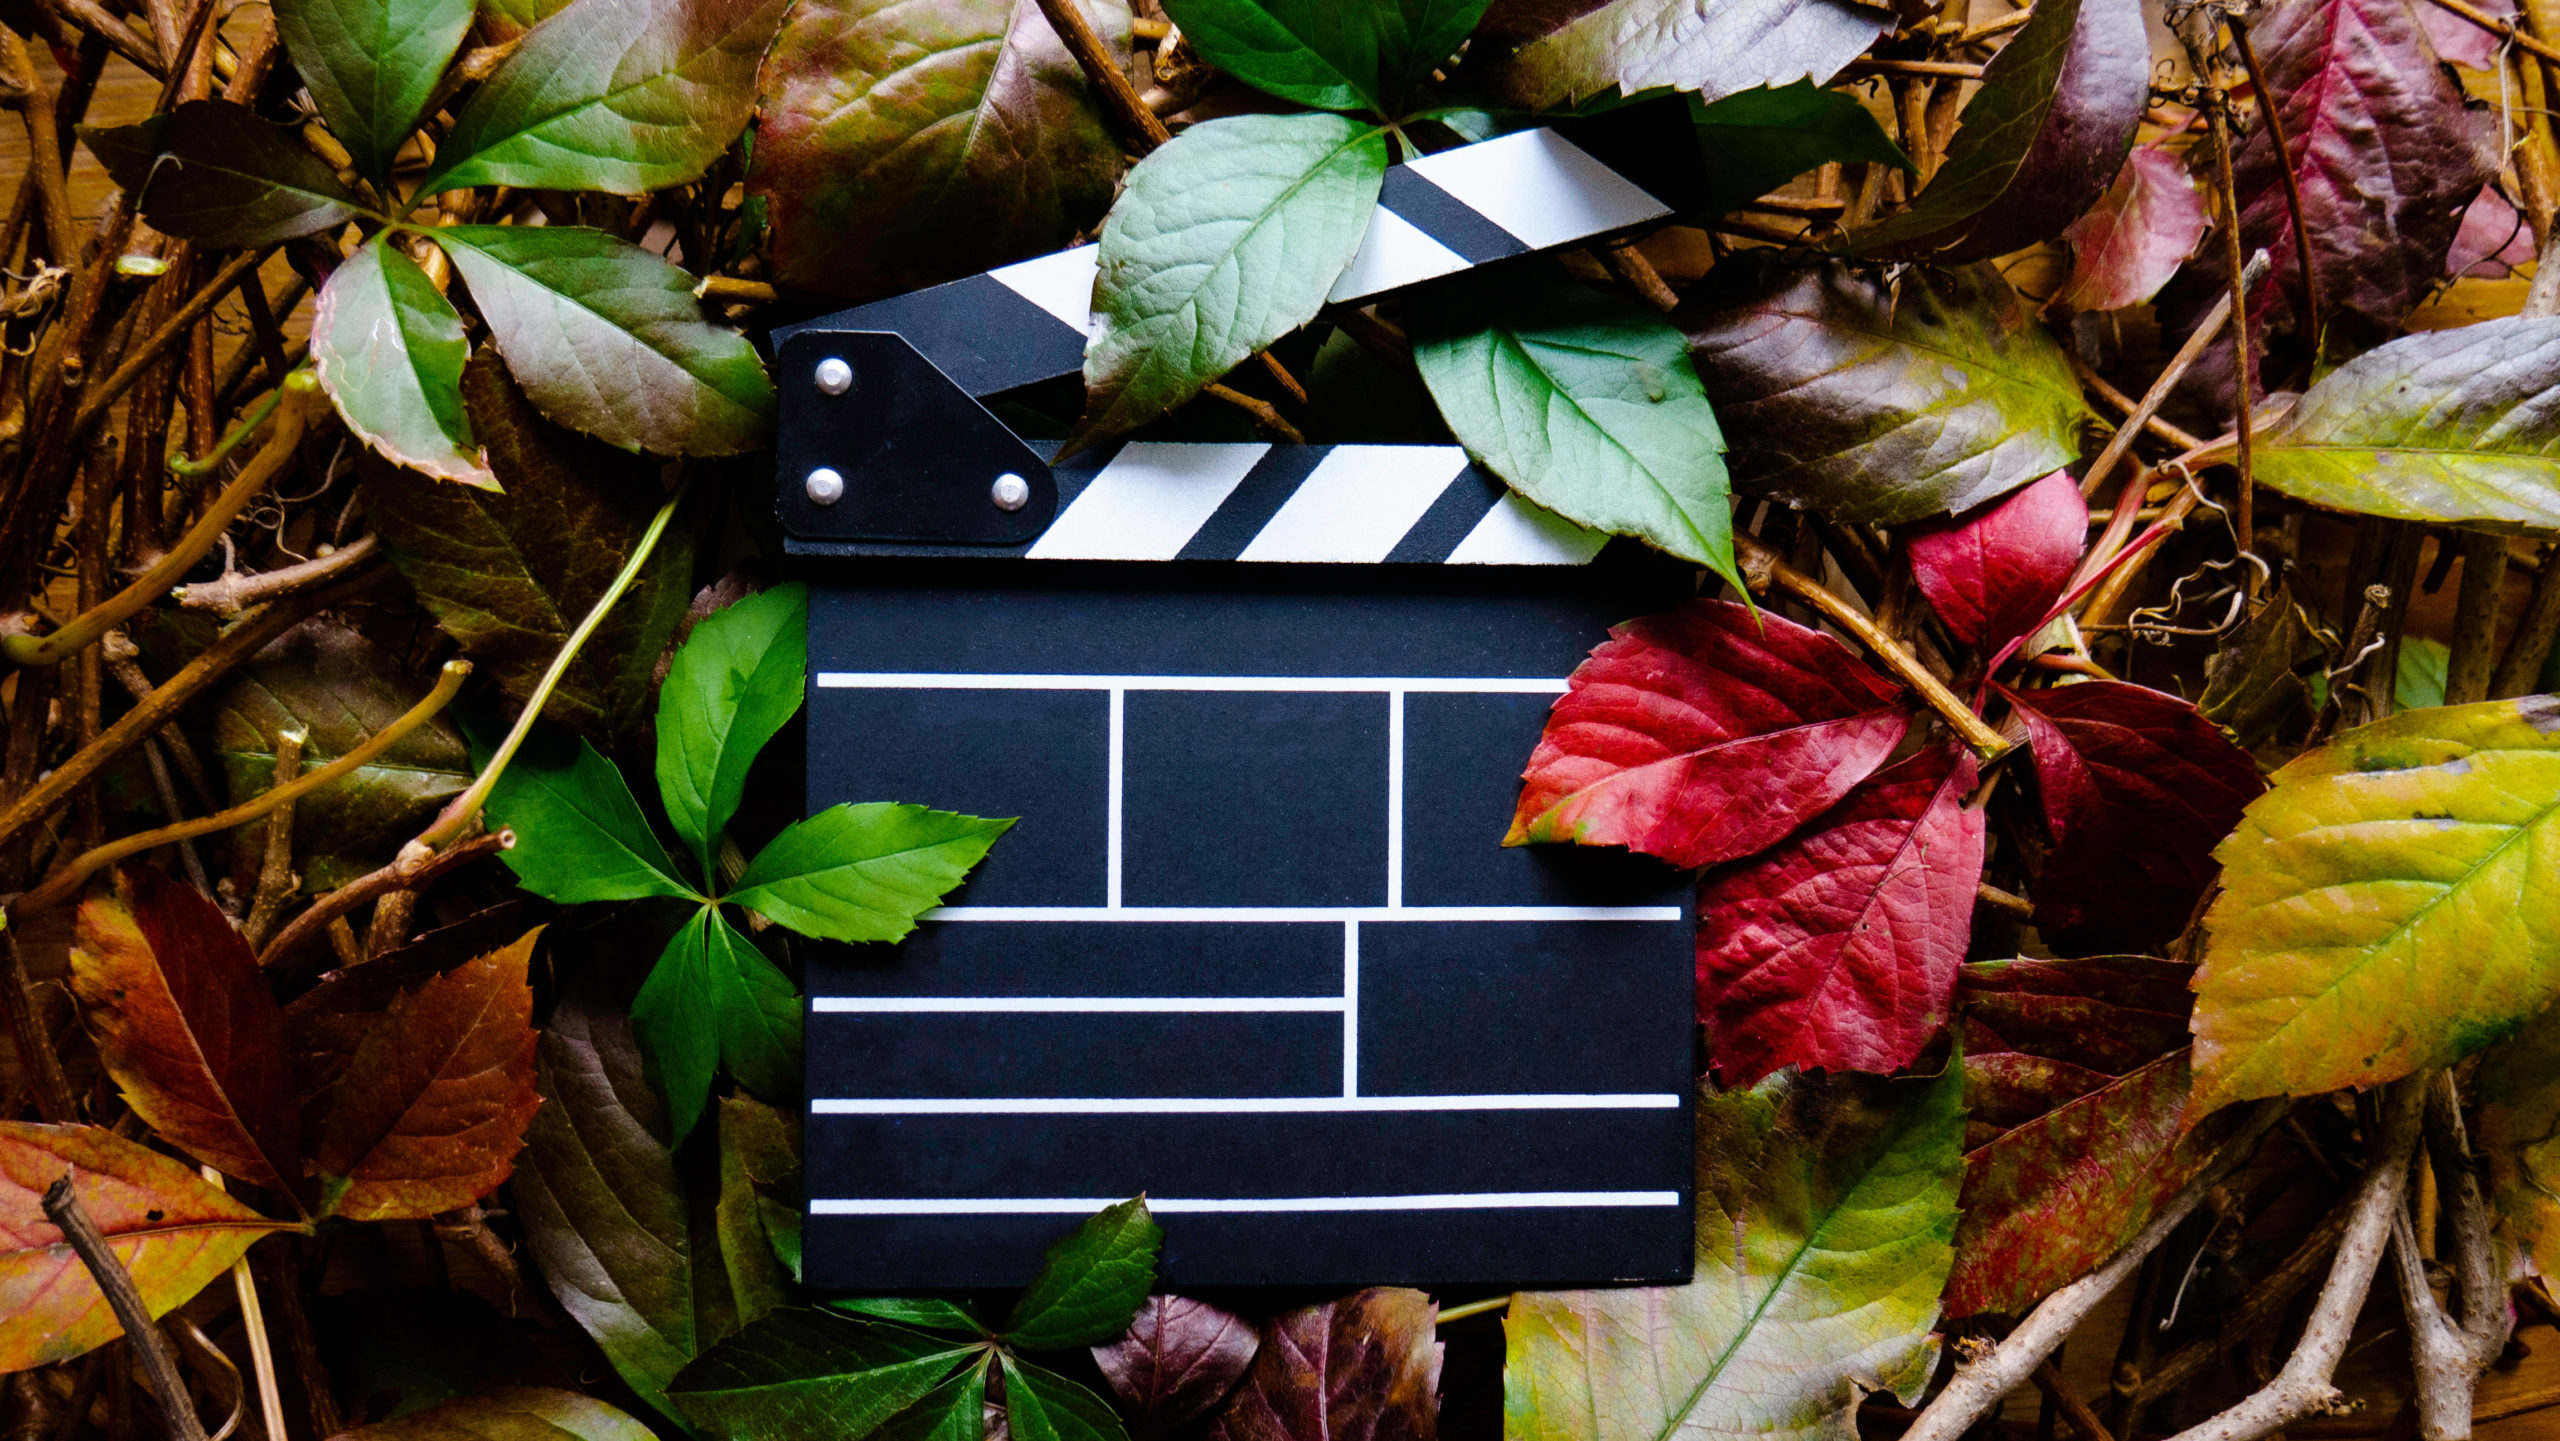 Empty wooden movie clapboard in frame of colorful autumn leaves. Nature concept. Top view. Ecological production, a film about environmental protection.